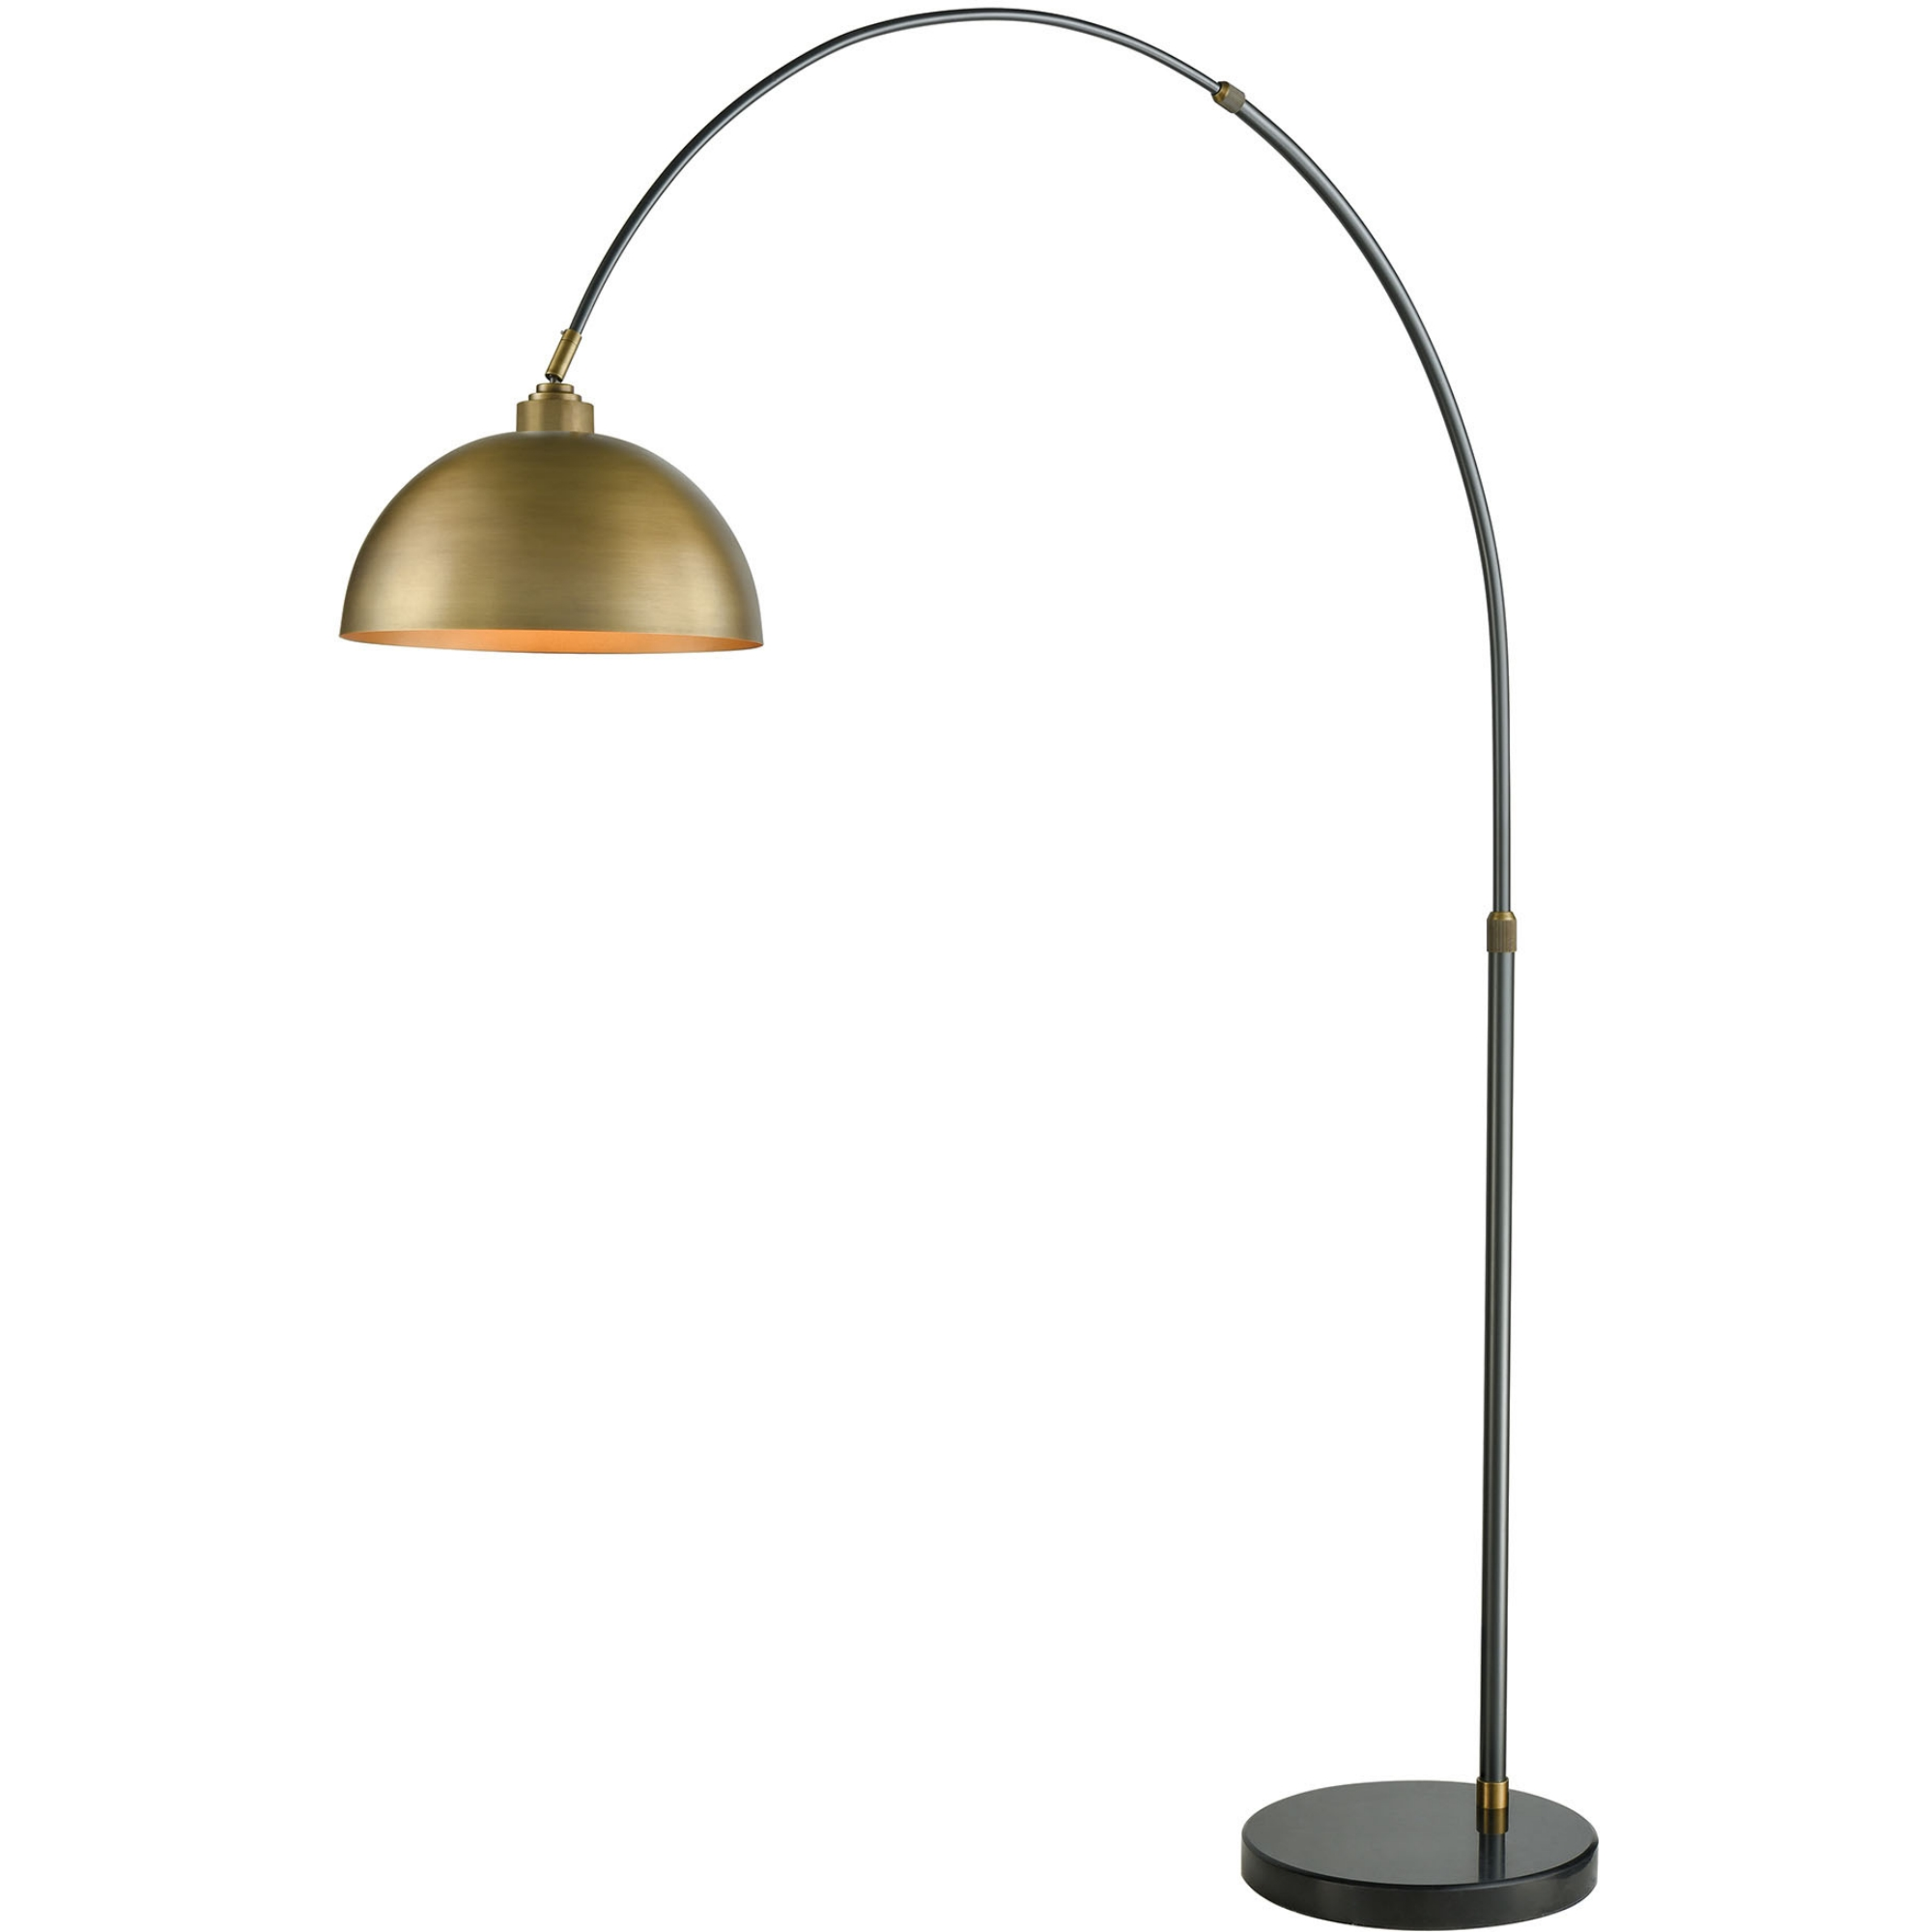 glass shades depot oil replacement base home elegant wonderful torchiere led lamp lovely canada rubbed floor floors parts etsustore of bronze